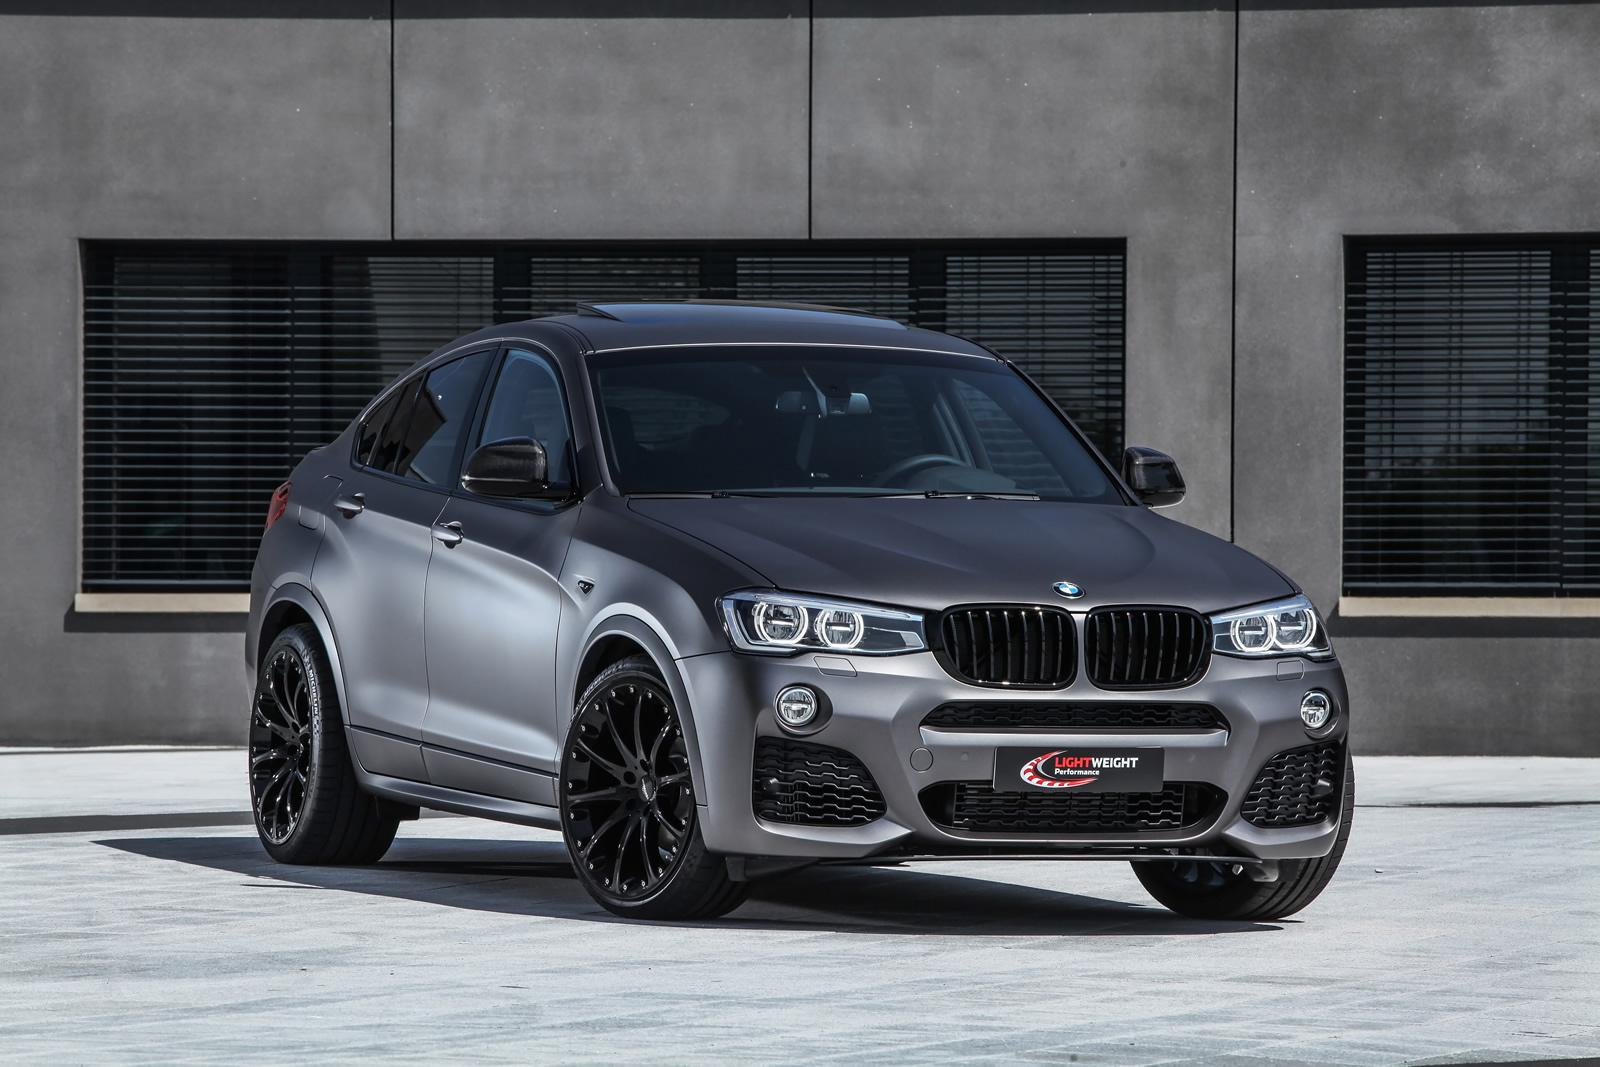 tuning firm 39 lightweight 39 reveals upgraded bmw x4 gtspirit